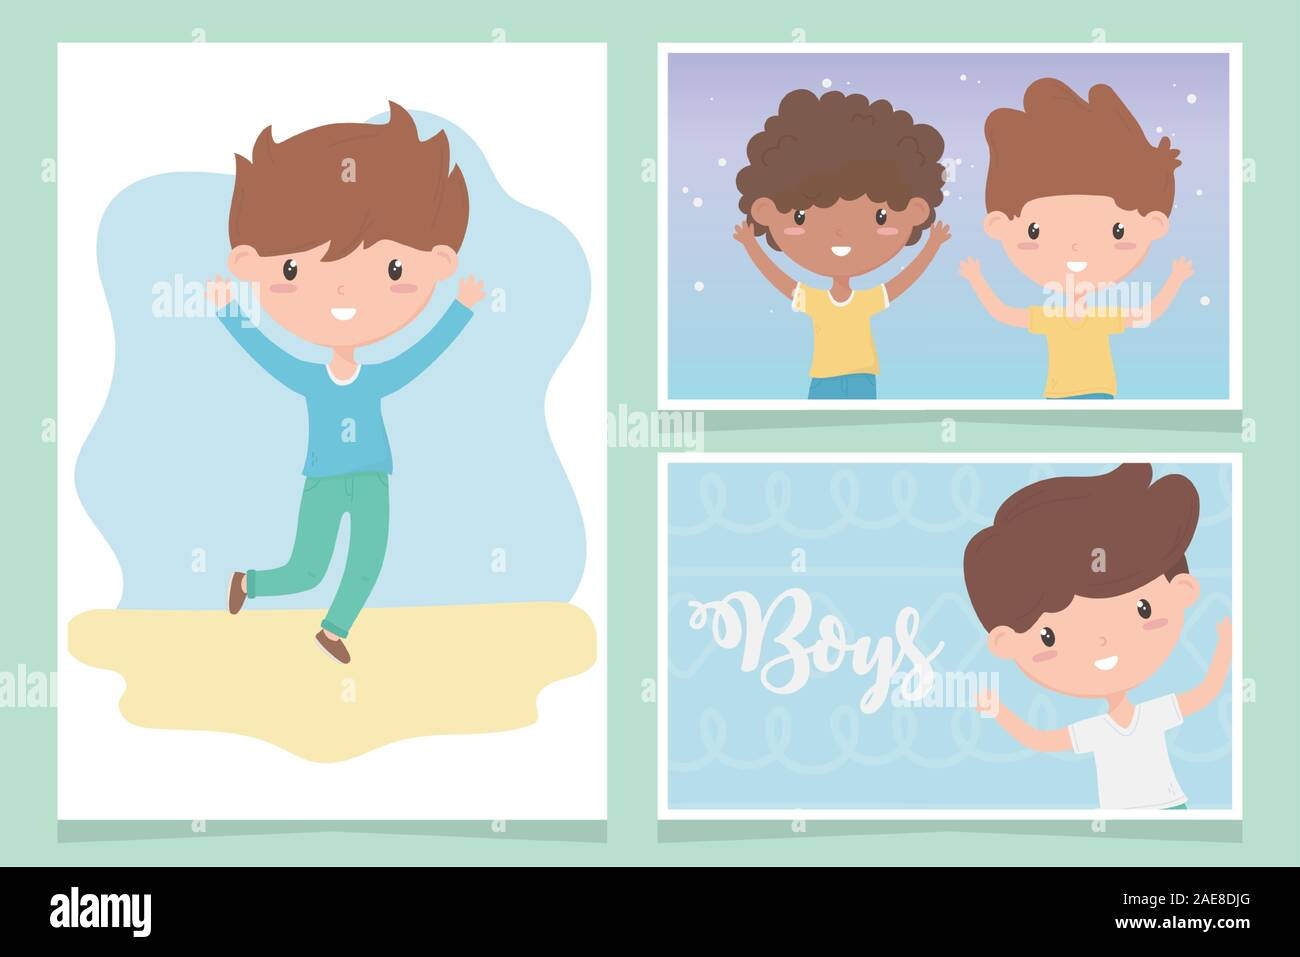 Funny Cartoon Images Of Boys happy childrens day, cute little boys cartoon funny cards